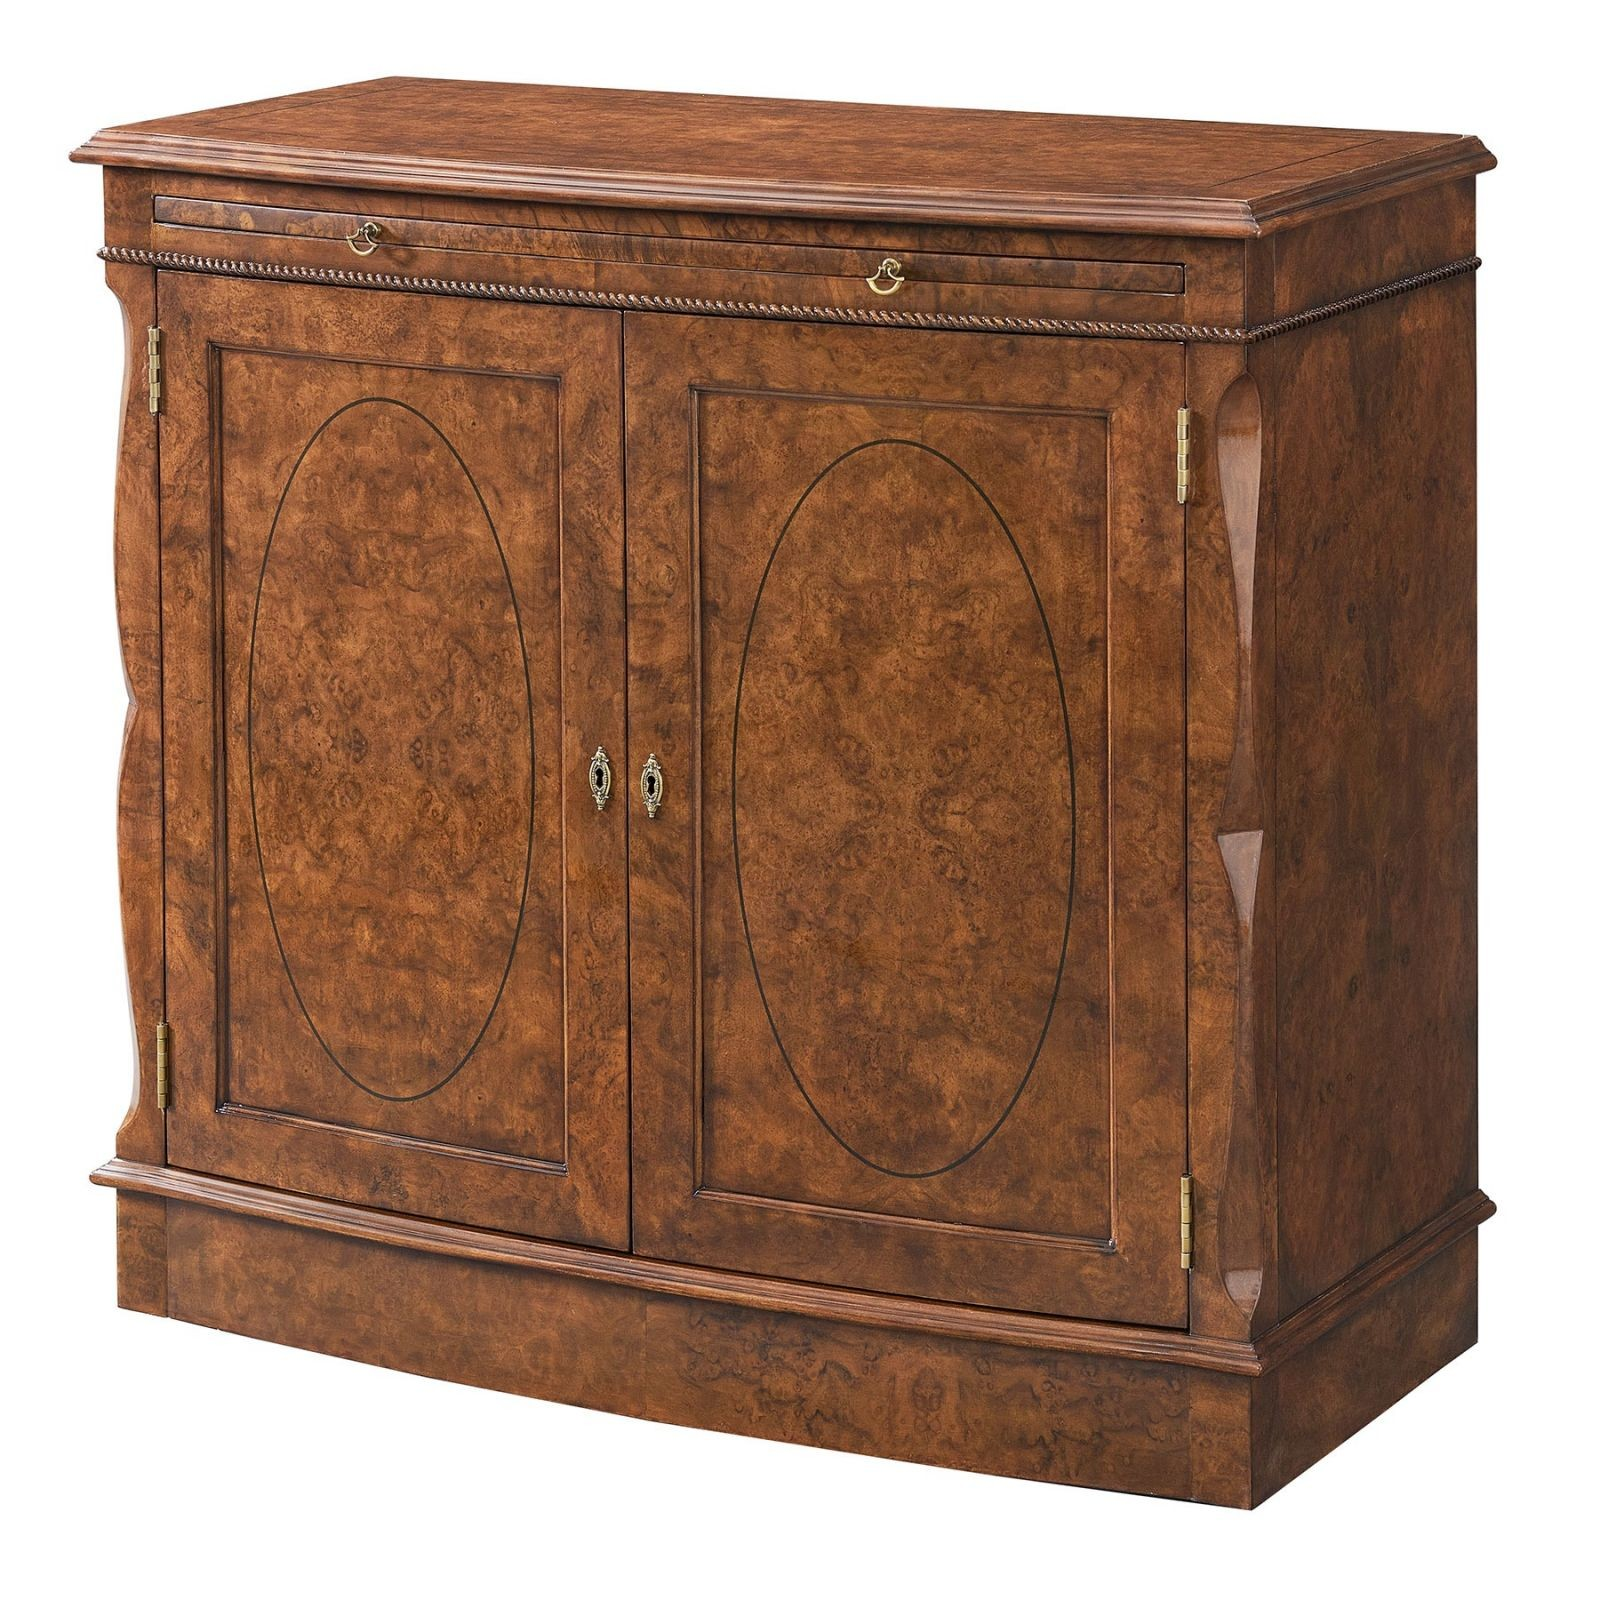 Bow fronted burr walnut side cabinet